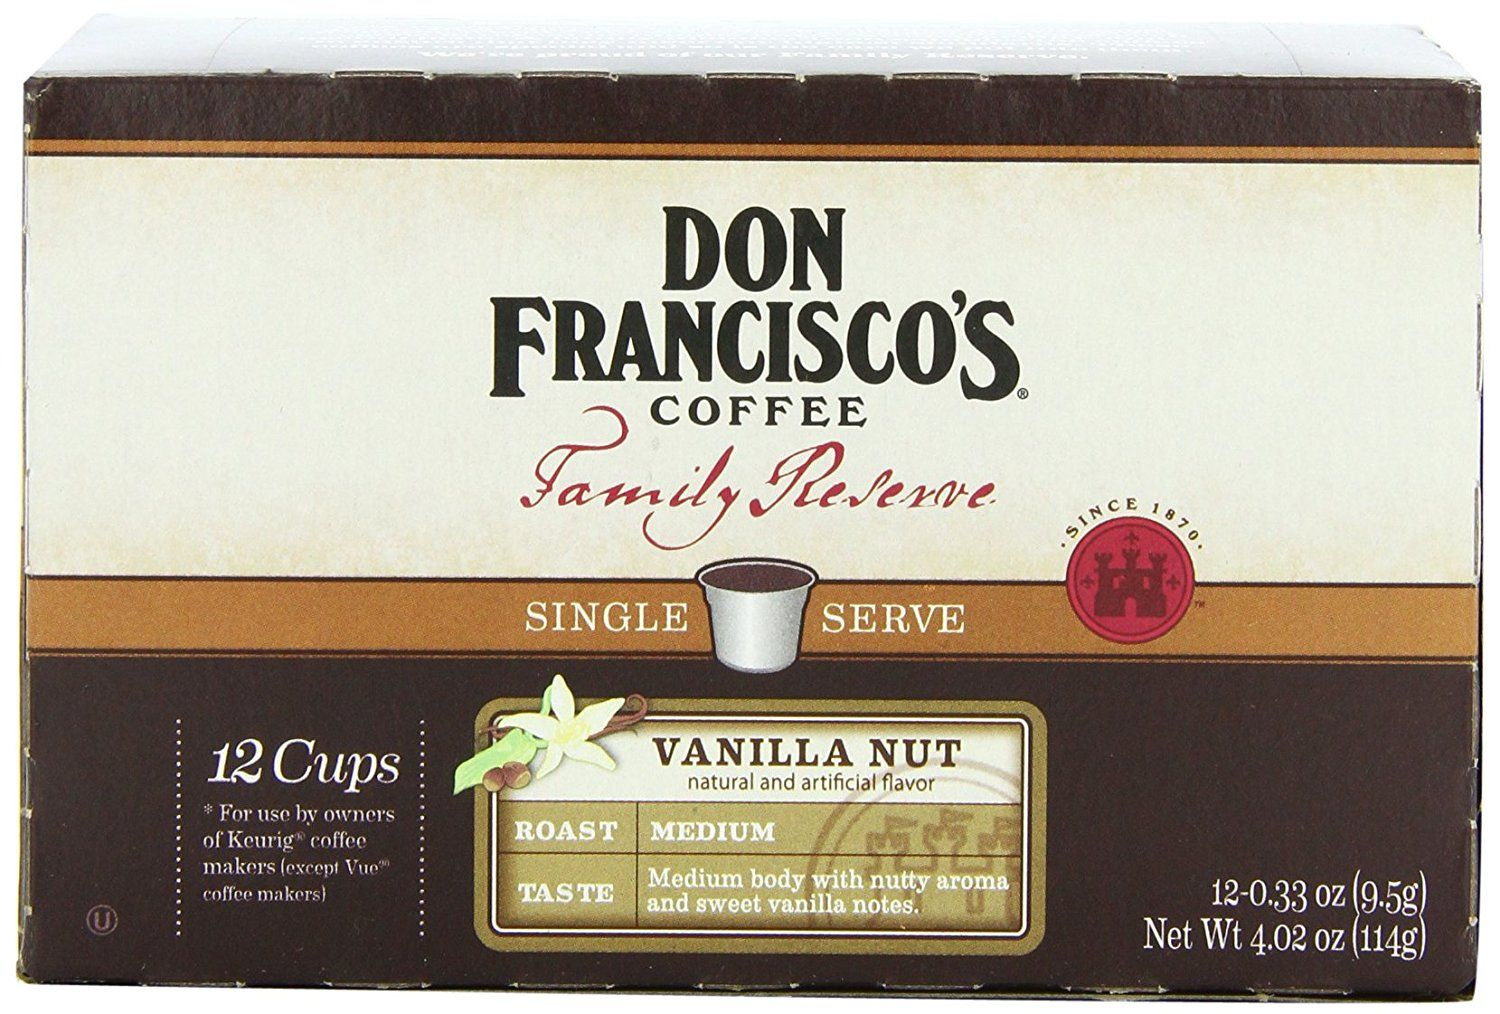 Don franciscos coffee family reserve single serve coffee